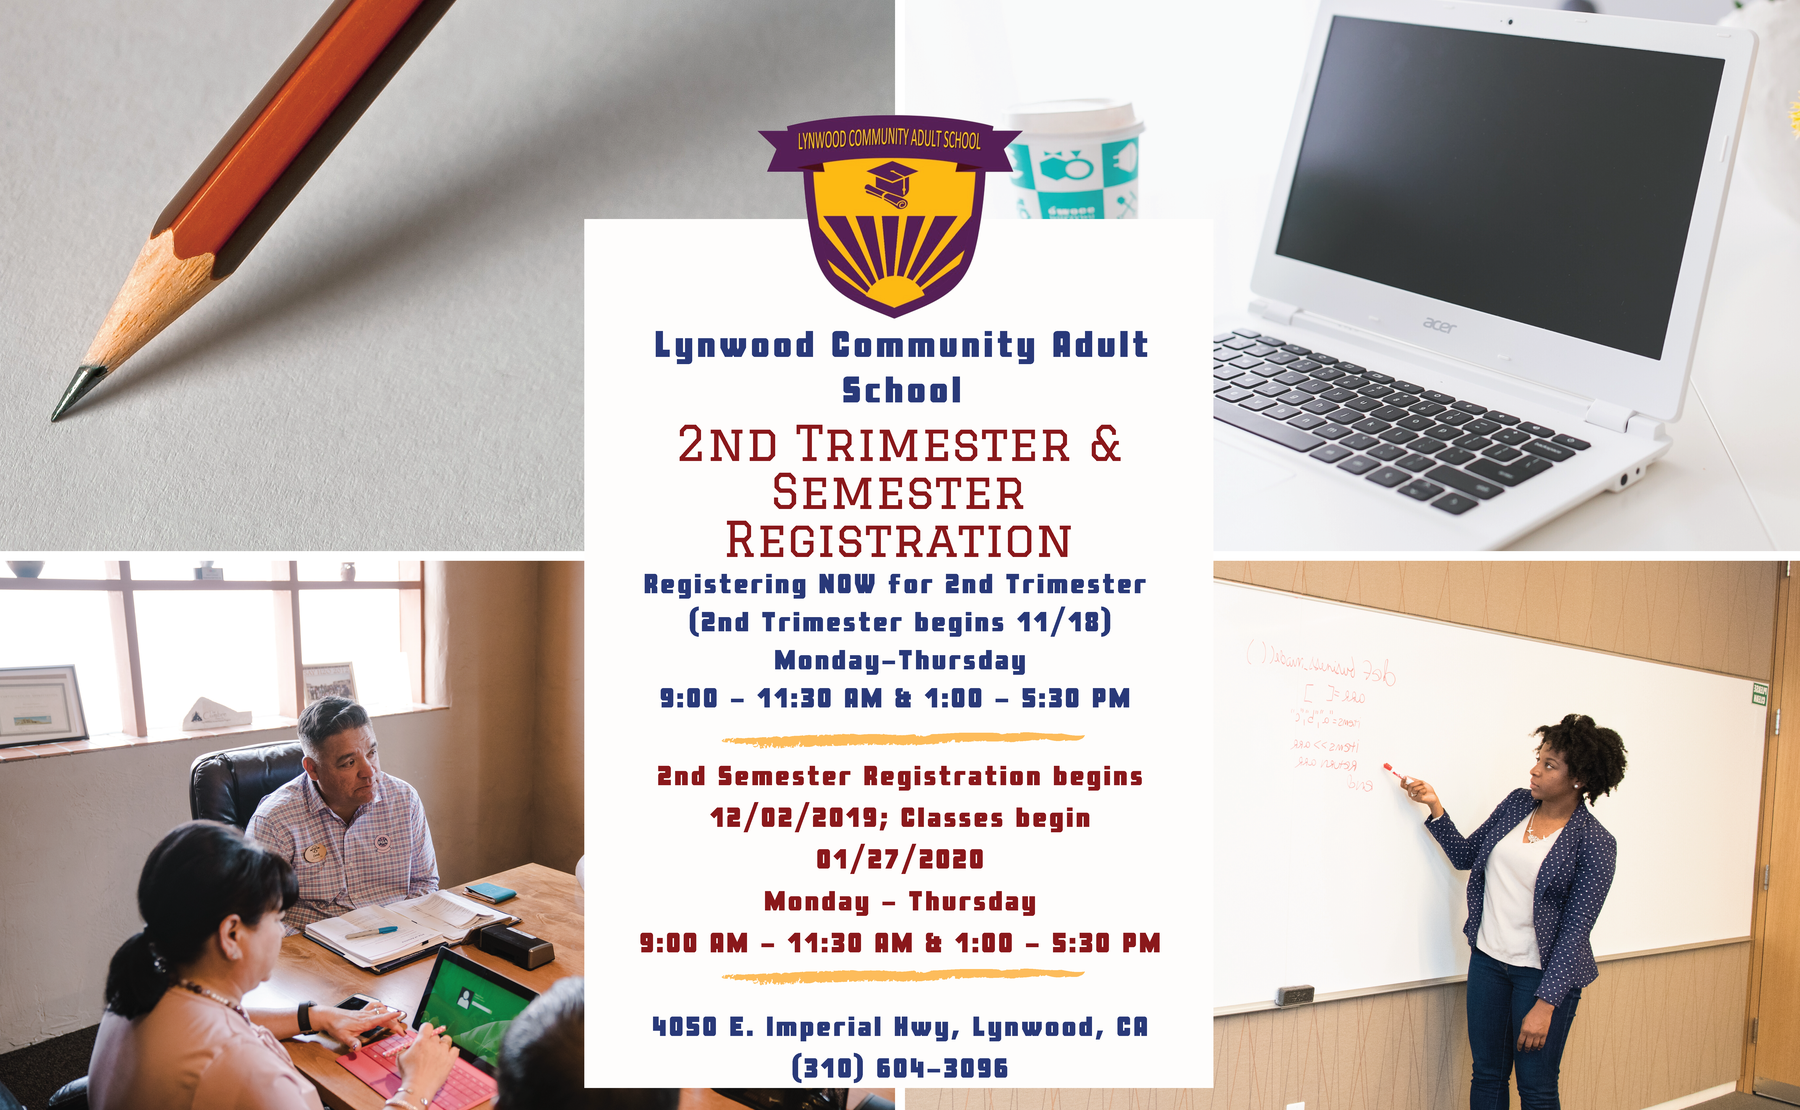 2nd Trimester and 2nd Semester Registration Registering NOW for 2nd Trimester  (2nd Trimester begins 11/18) Monday-Thursday 9:00 - 11:30 AM & 1:00 - 5:30 PM   2nd Semester Registration begins 12/02/2019; Classes begin 01/27/2020 Monday - Thursday 9:00 AM - 11:30 AM & 1:00 - 5:30 PM  4050 E. Imperial Hwy, Lynwood, CA (310) 604-3096